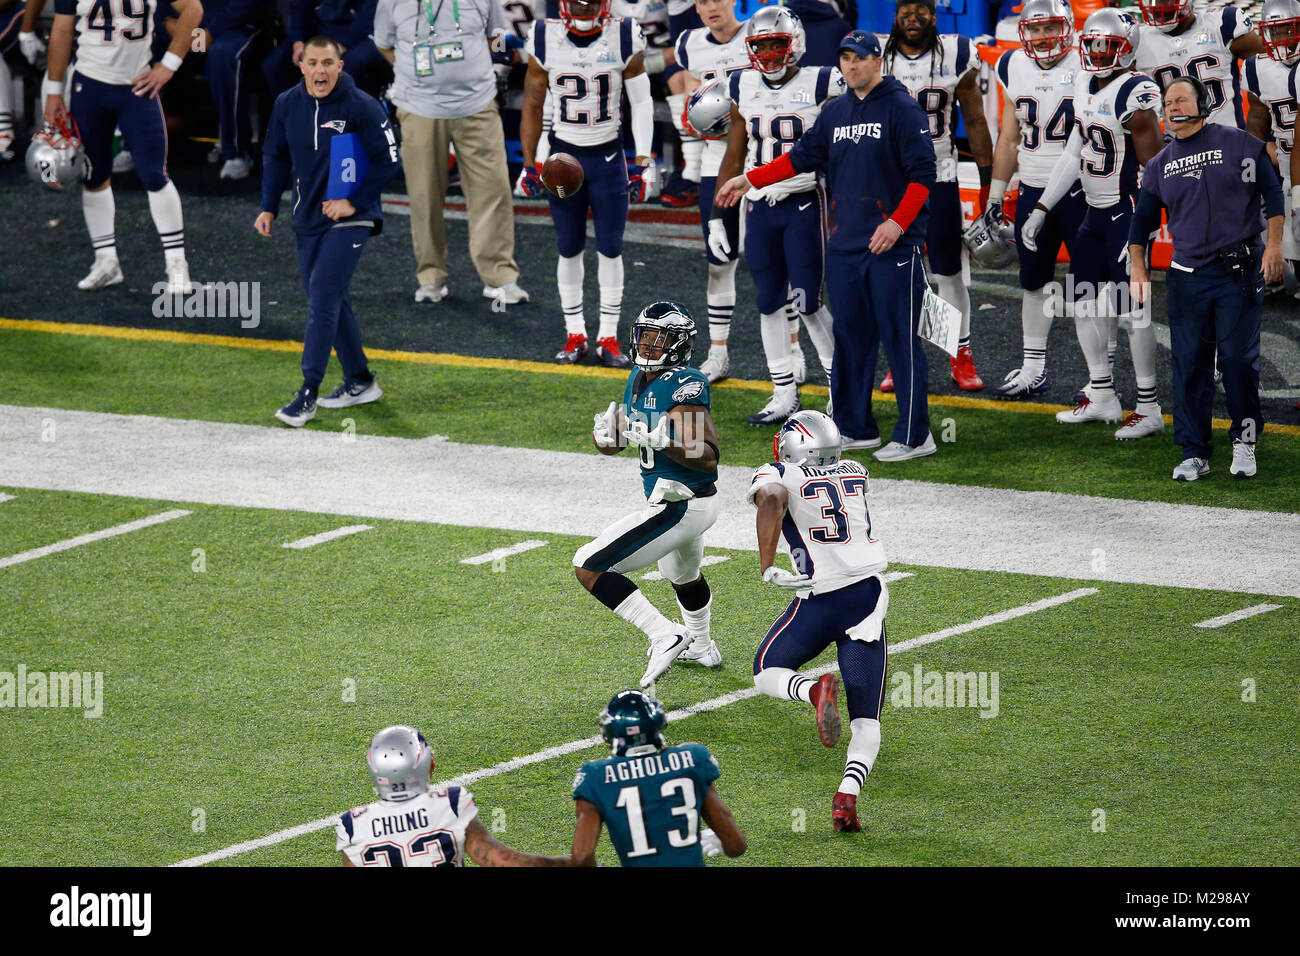 February 04, 2018 Philadelphia Eagles running back Corey Clement (30) makes a catch during Super Bowl LII between - Stock Image